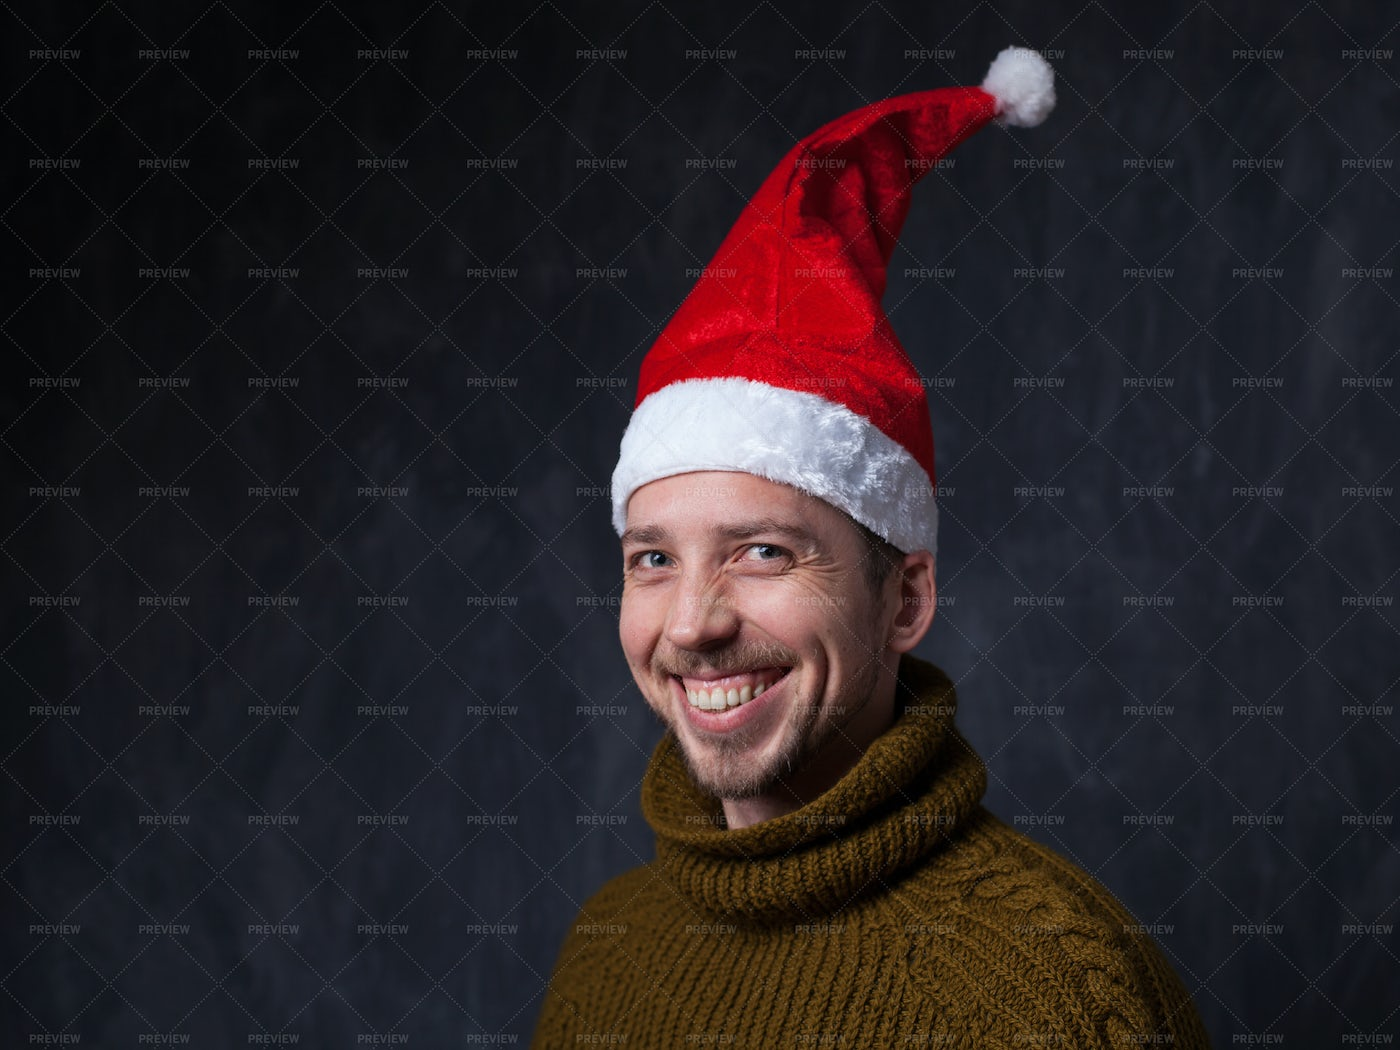 Man Smiling In Red Christmas Cap: Stock Photos